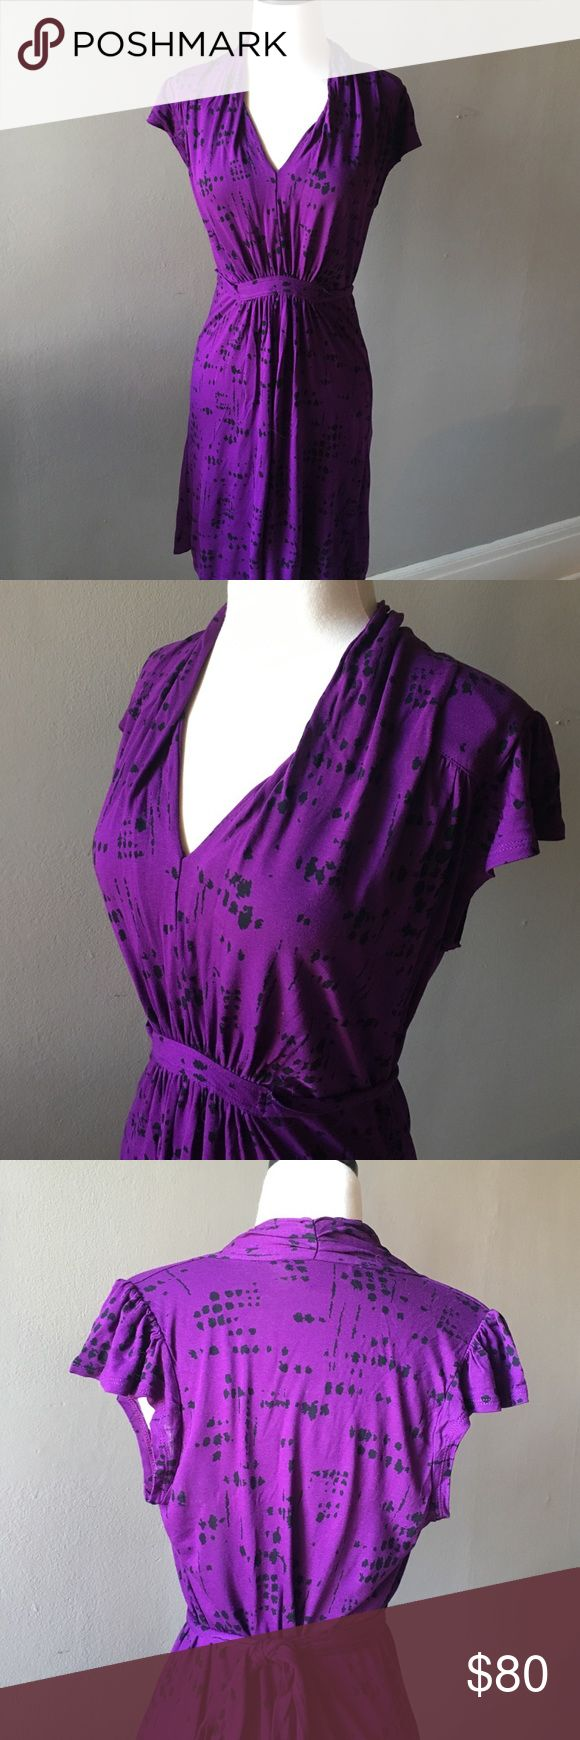 French Connection bright purple dress, size 6 This dress is perfect for summer nights out! Purple and black patterned French Connection dress. Ties in the back and has flutter sleeves. Size 6, length is 34 inches in total French Connection Dresses